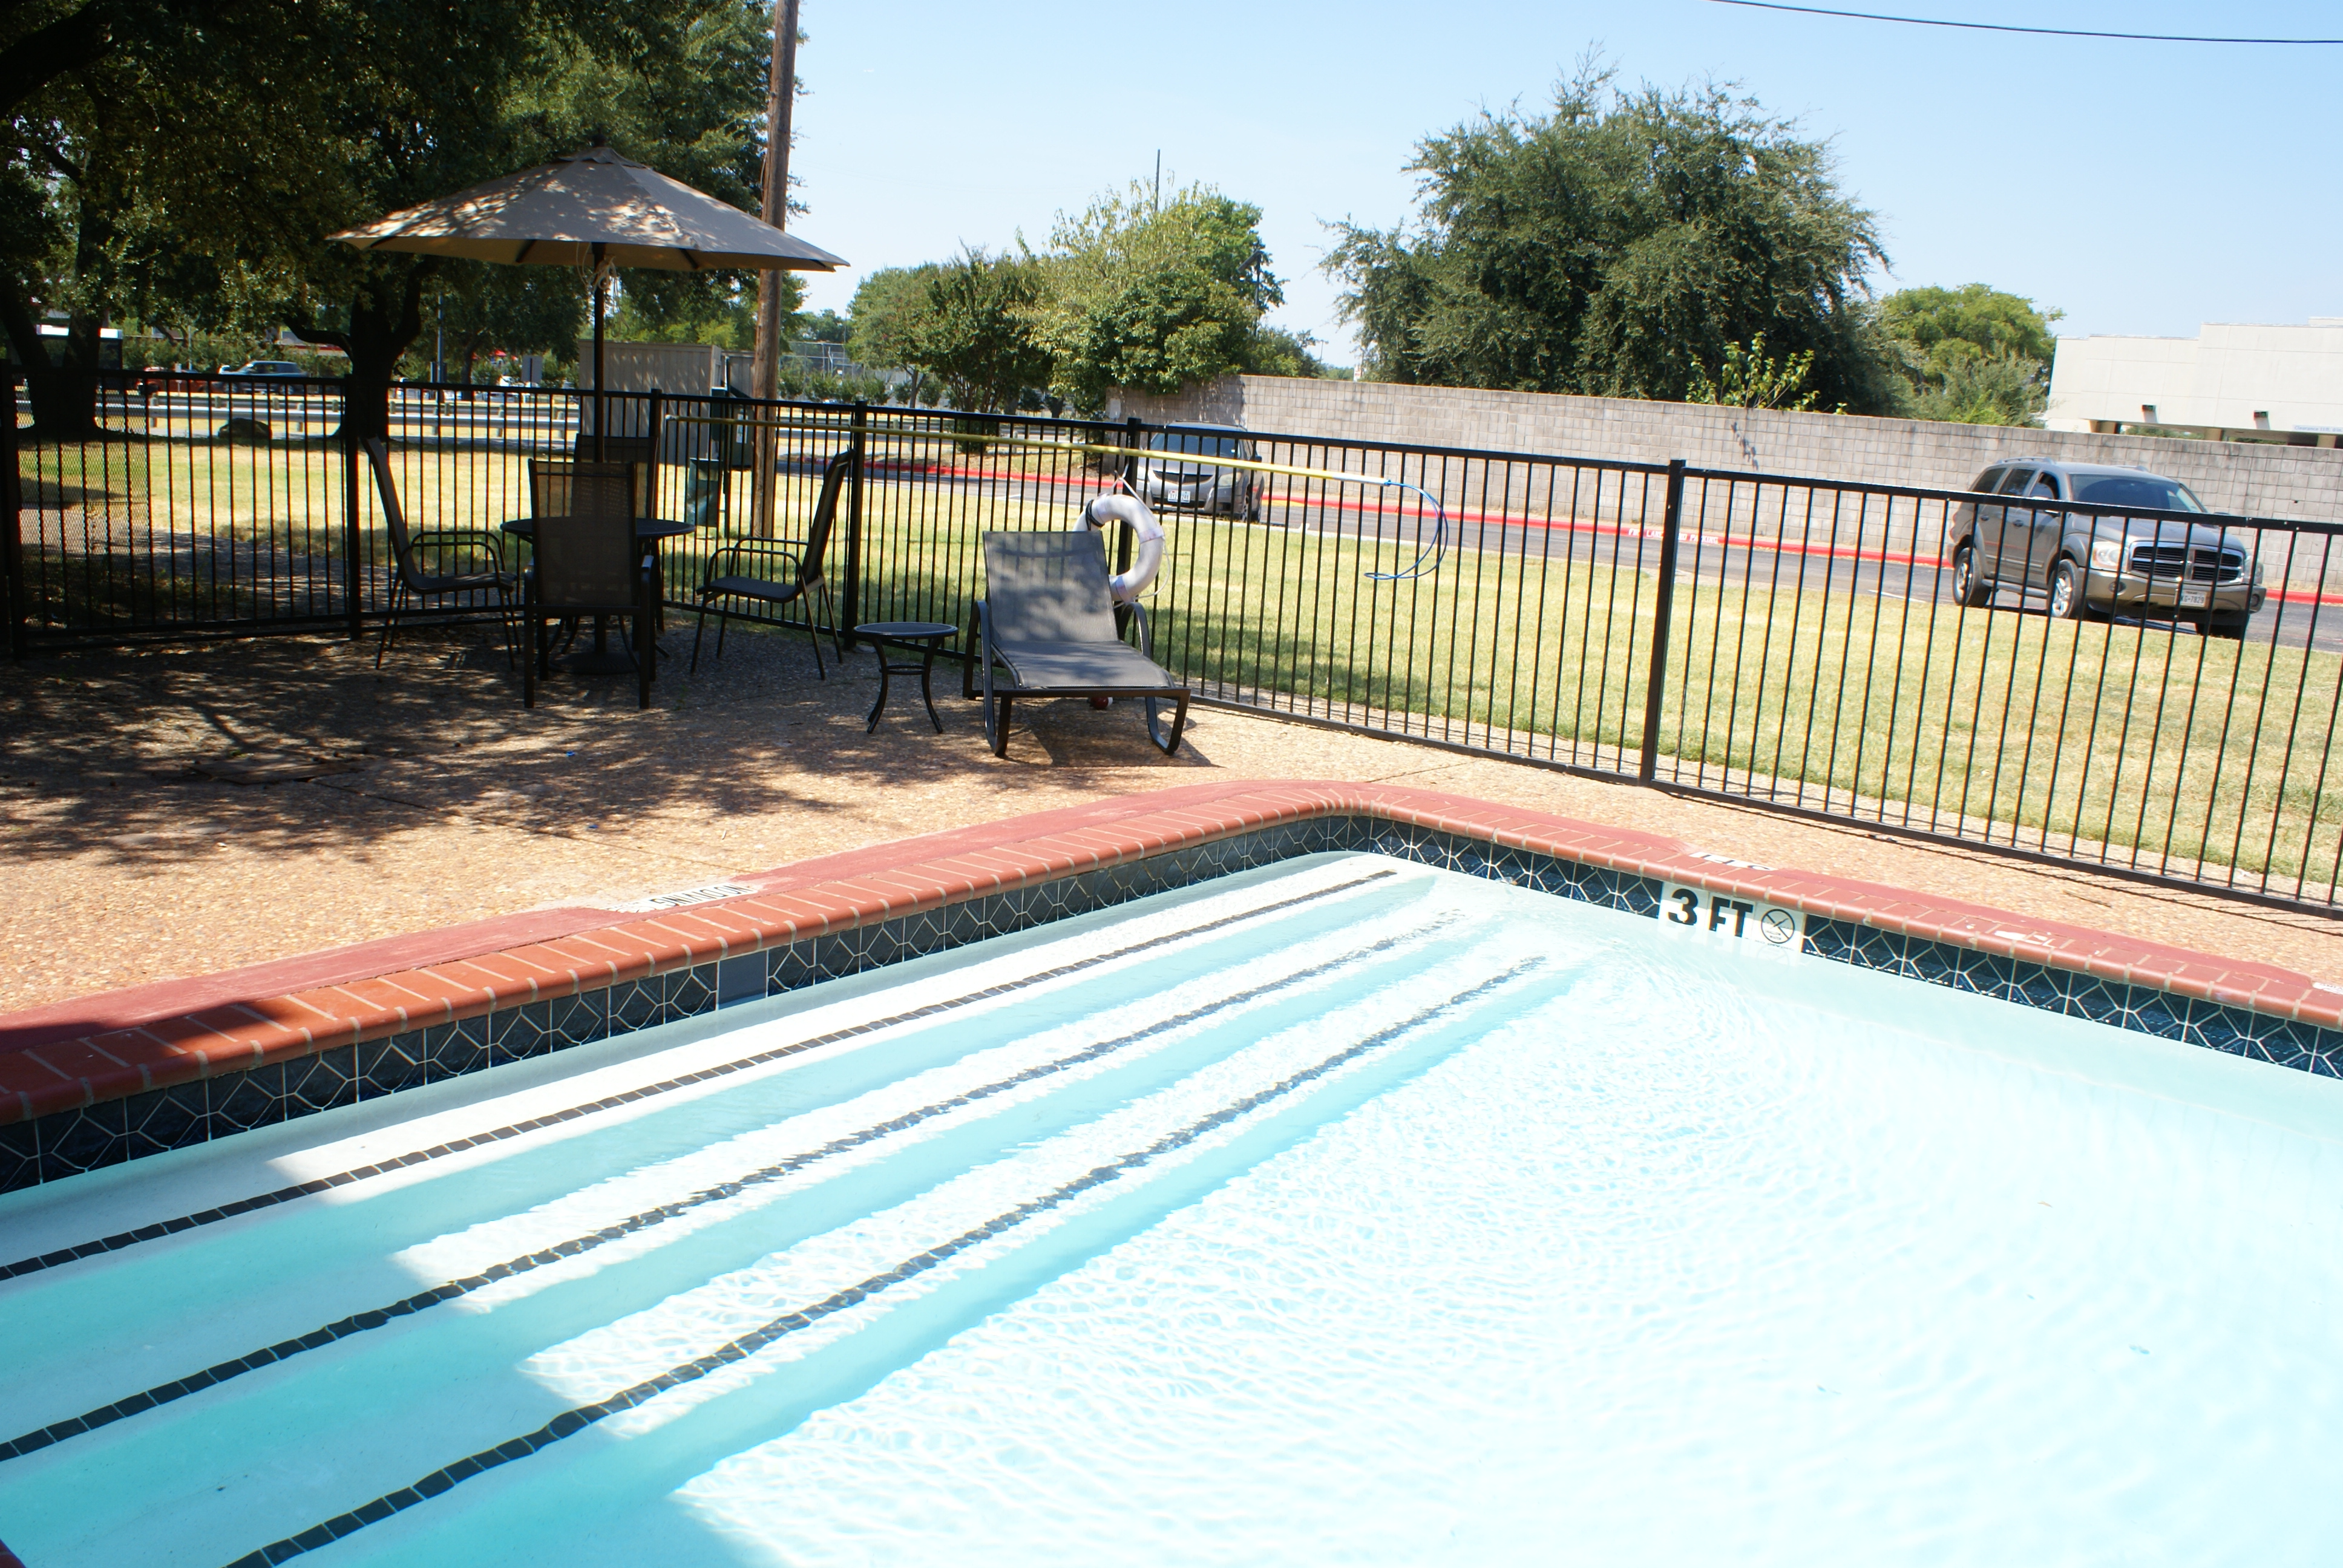 Sparkling pool for residents use